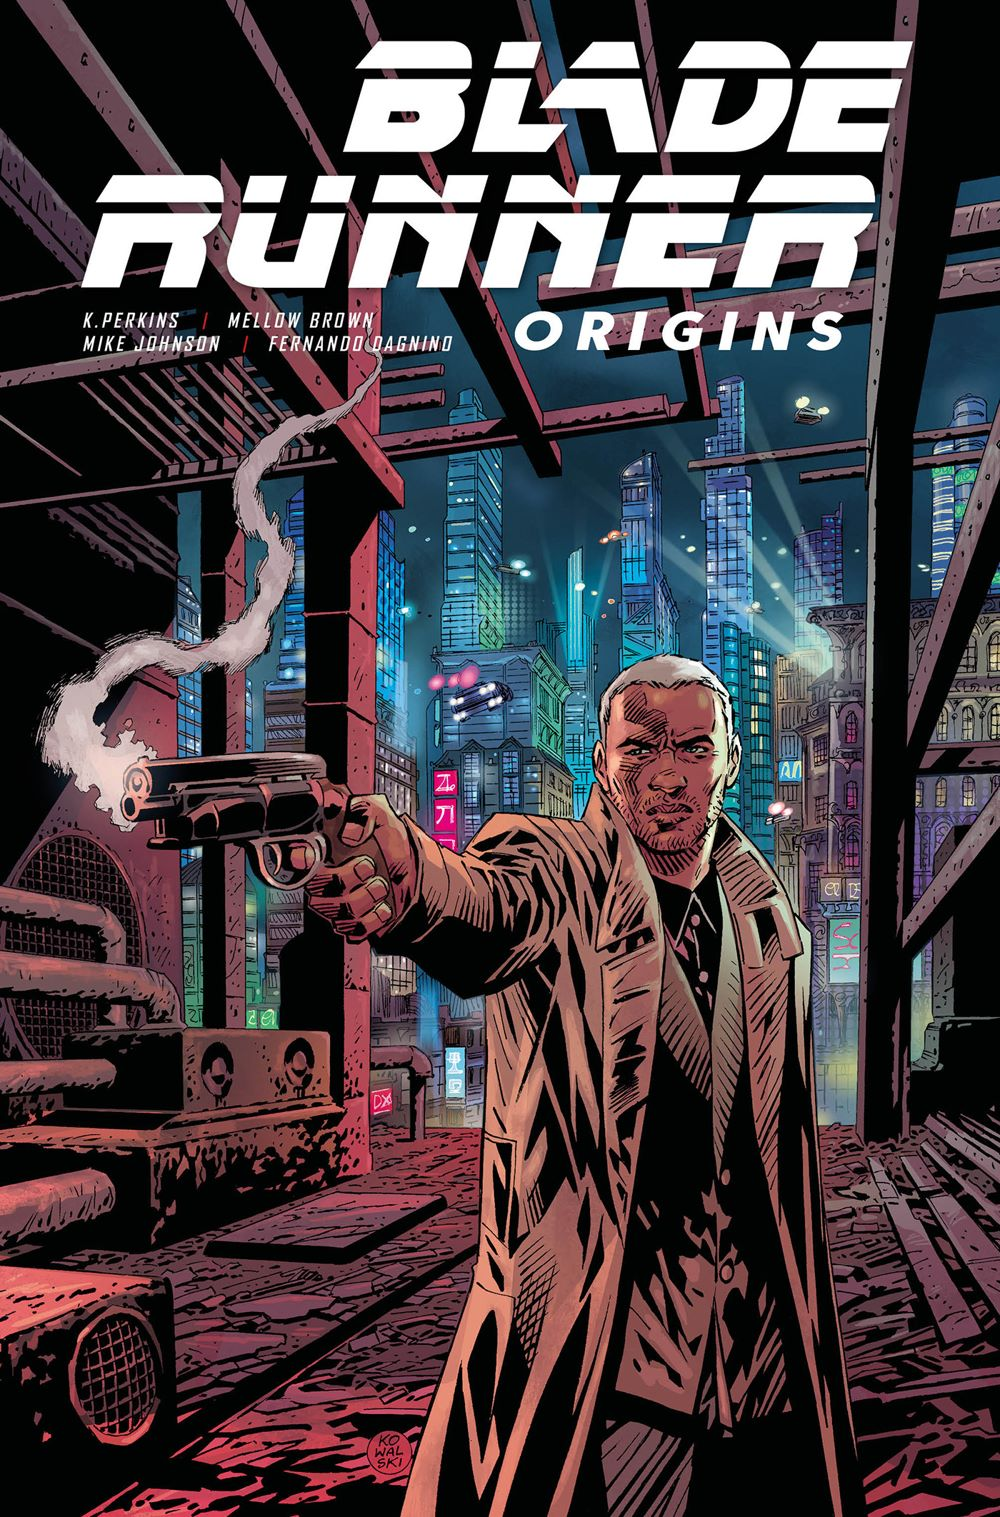 BLADE-RUNNER-ORIGINS-TP Titan Comics June 2021 Solicitations